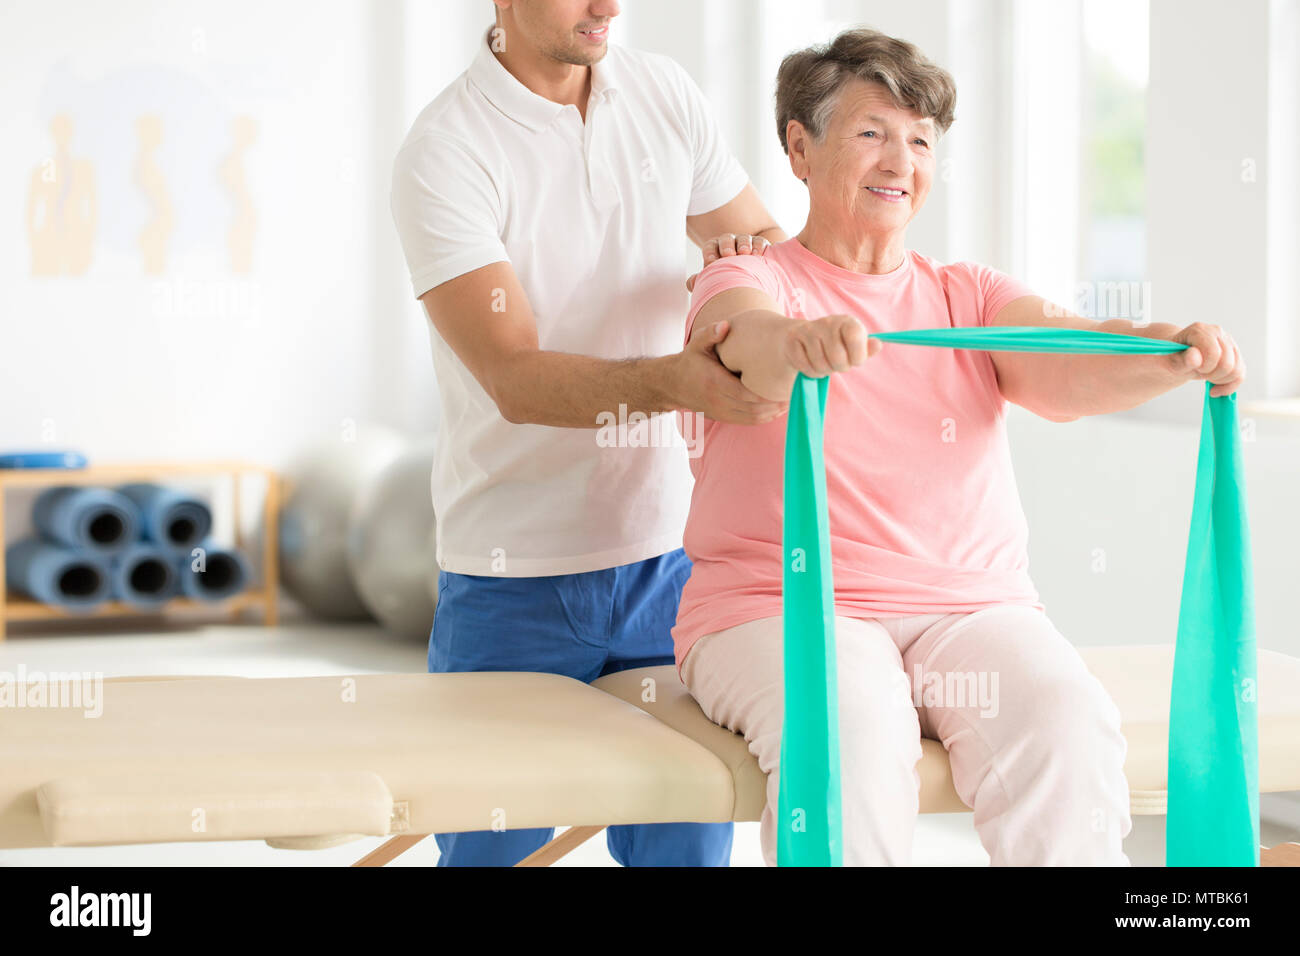 Elderly woman doing active pnf exercises with a teal scarf as a part of her rehabilitation program with a physiotherapist - Stock Image